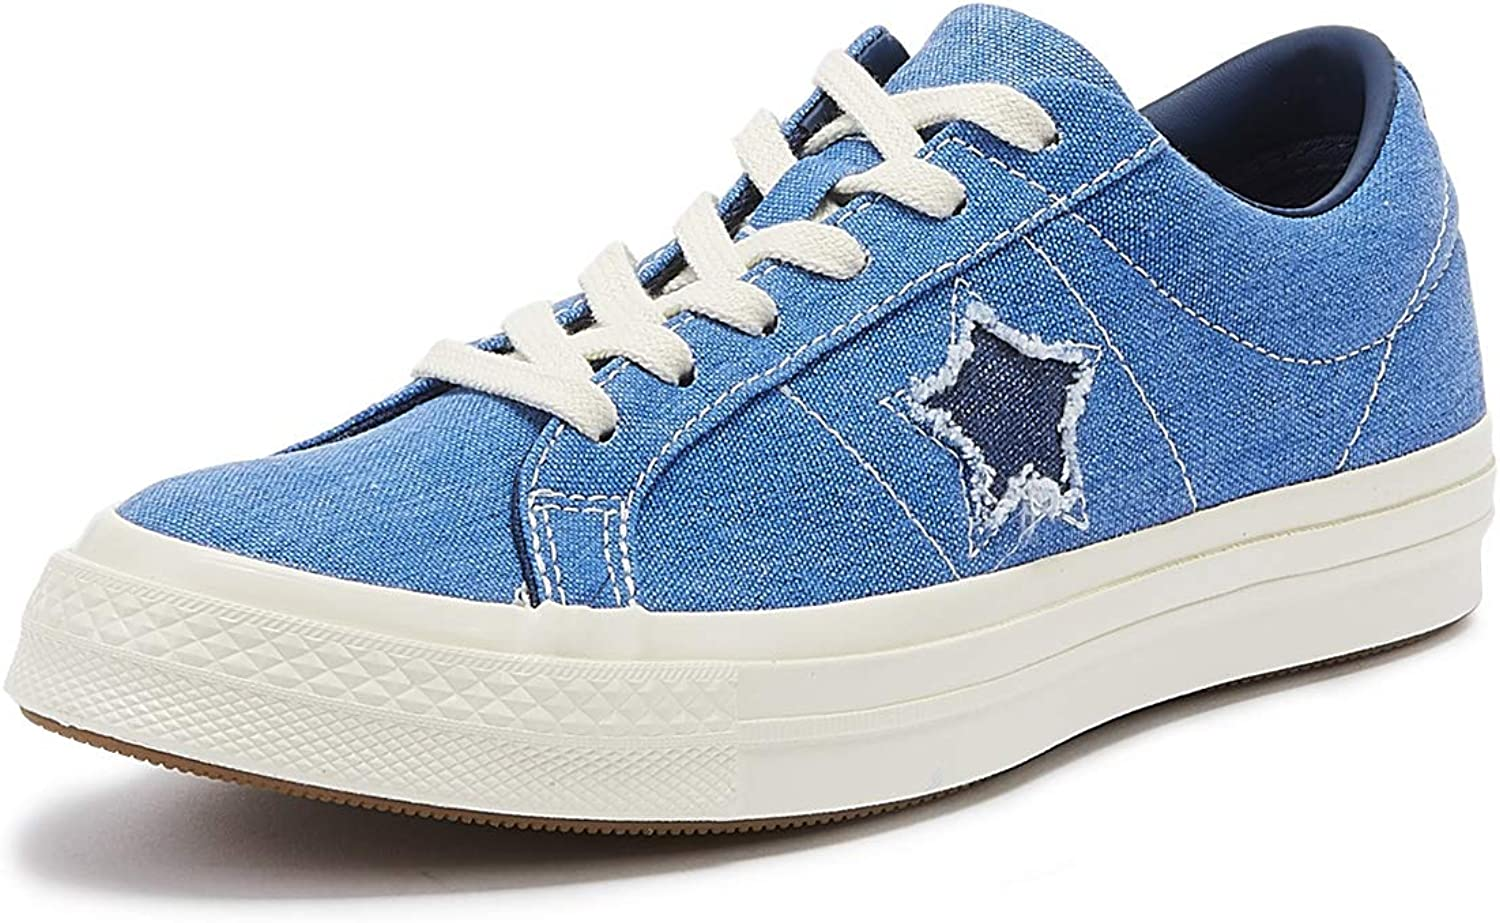 Converse One Star Mens Totally bluee Ox Trainers